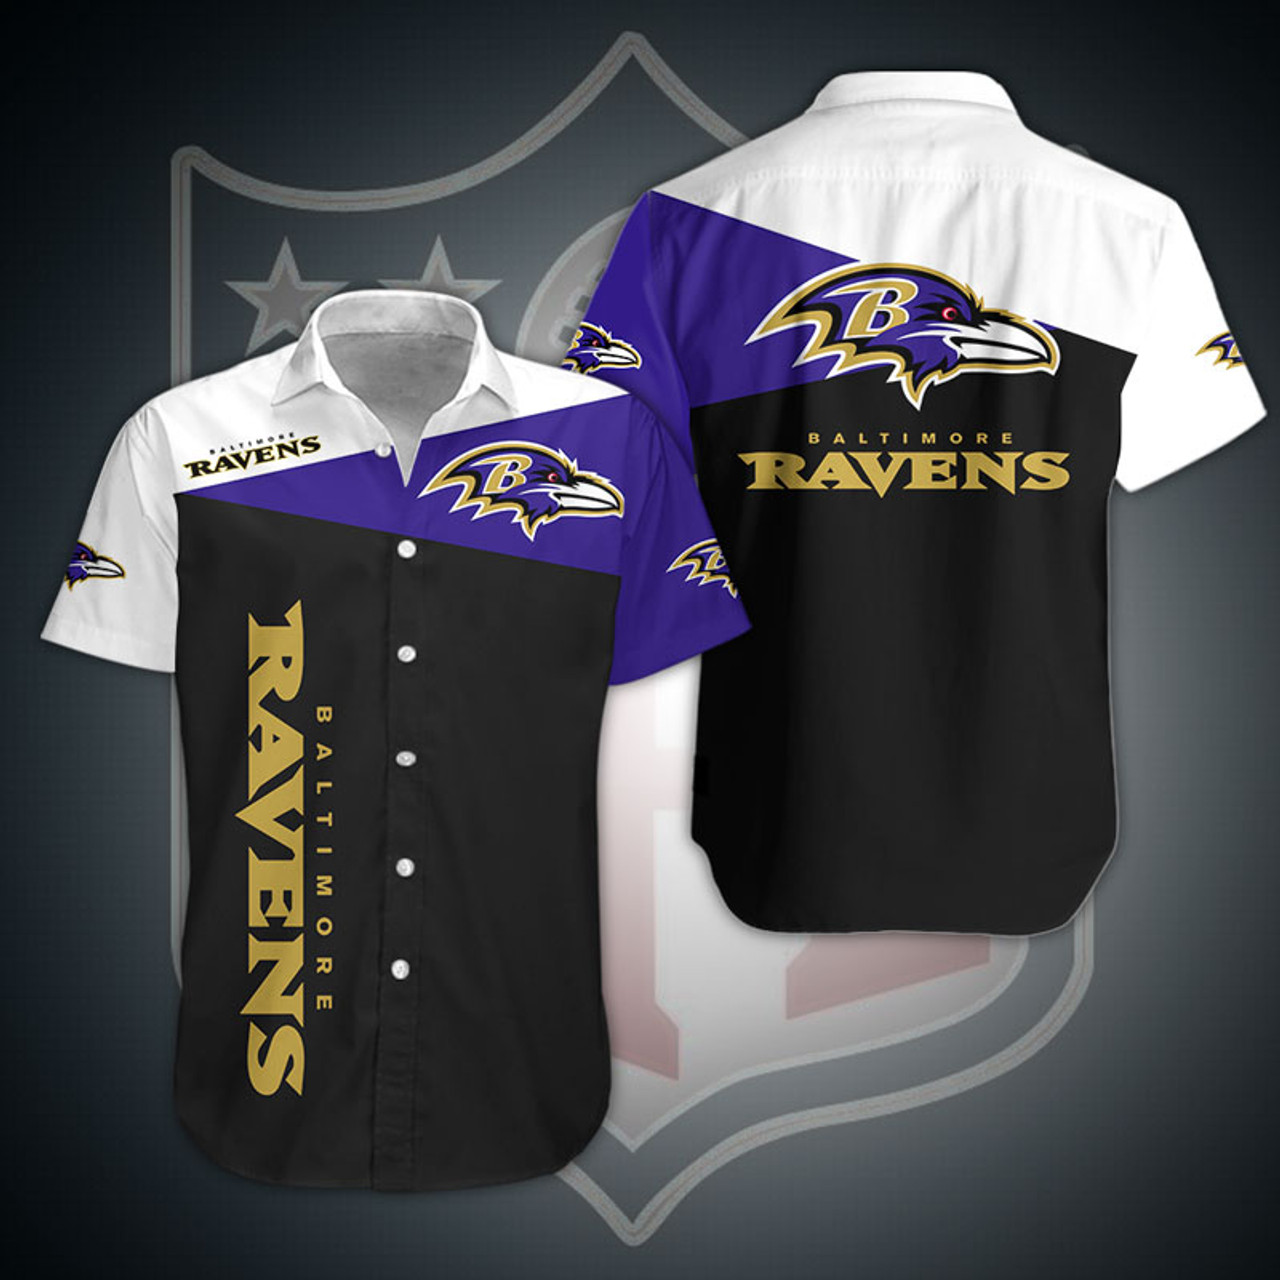 **(OFFICIAL-N.F.L.BALTIMORE-RAVENS-FASHION-BUTTON-DOWN-SPORT-SHIRTS/CUSTOM-3D-GRAPHIC-PRINTED-DETAILED-DOUBLE-SIDED-ALL-OVER/CLASSIC-OFFICIAL-RAVENS-LOGOS & RAVENS-OFFICIAL-TEAM-COLORS/PREMIUM-OFFICIAL-N.F.L.RAVENS-TEAM-BUTTON-UP-SPORT-SHIRTS)**